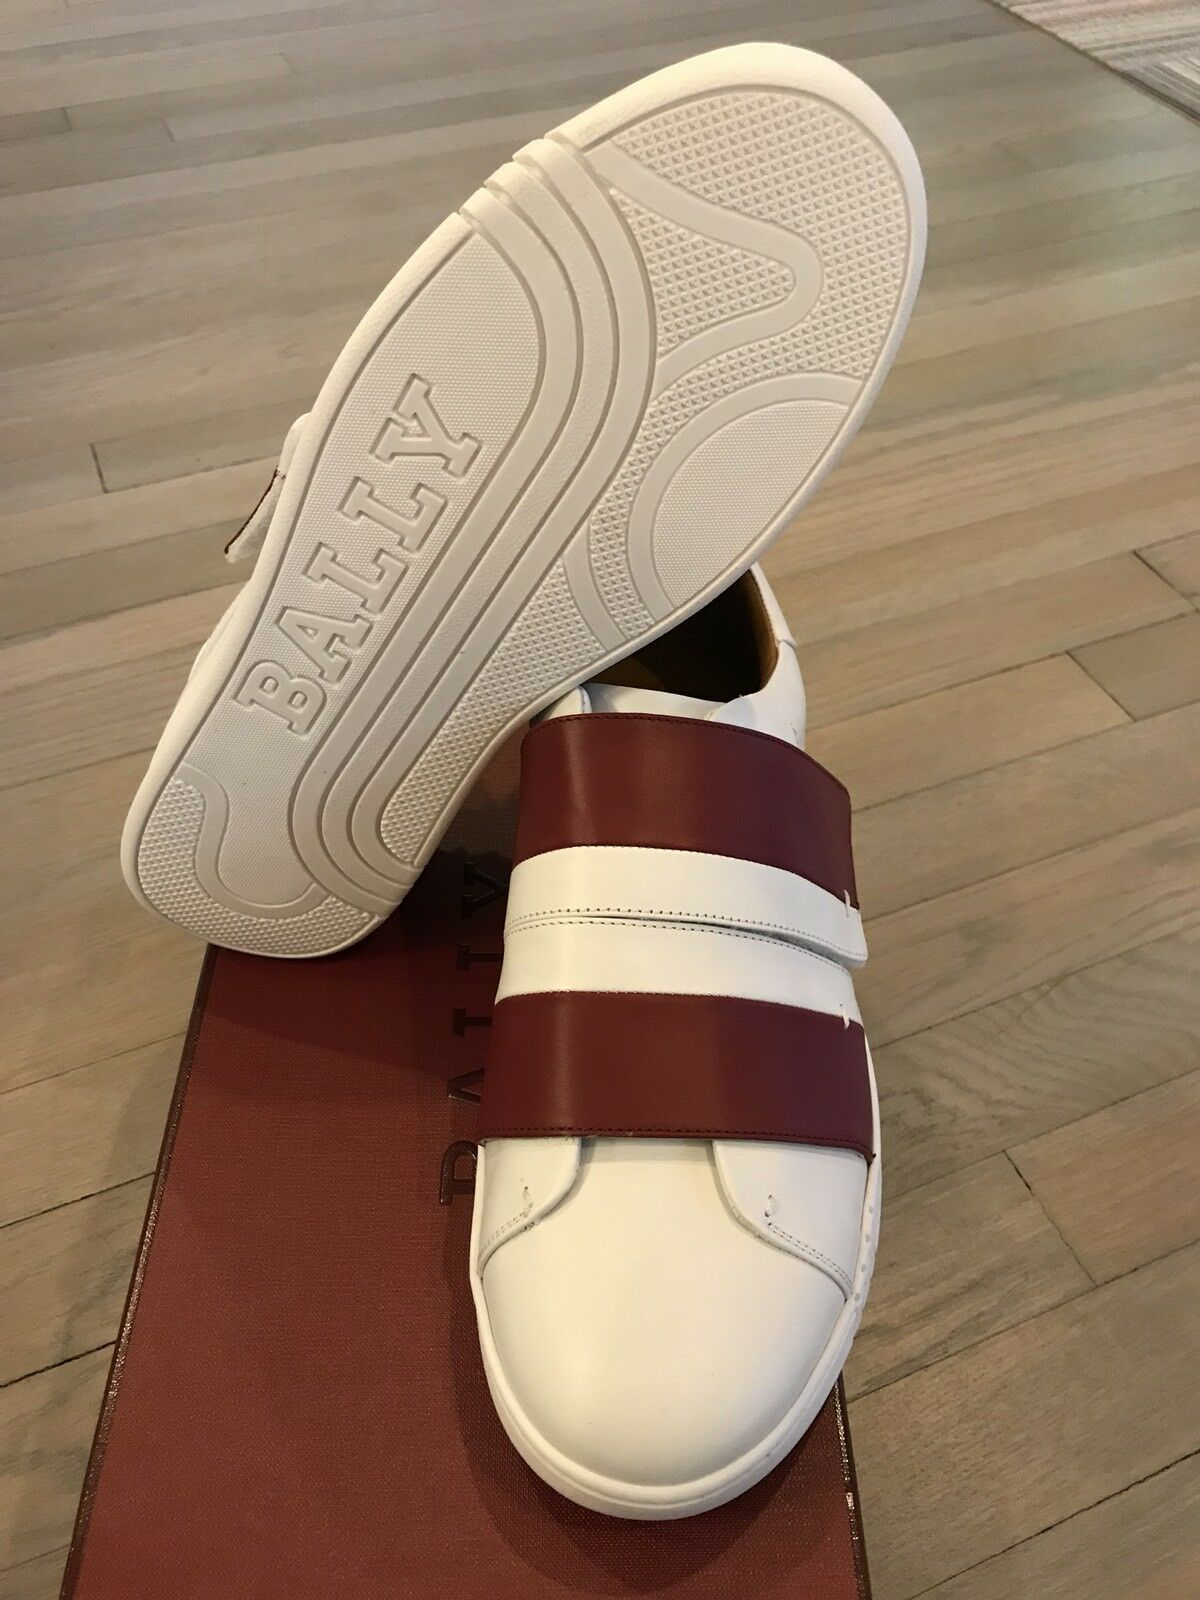 550$ Bally Willet White and and and Red Leather Sneakers size US 9.5 Made in Italy 1f97f1